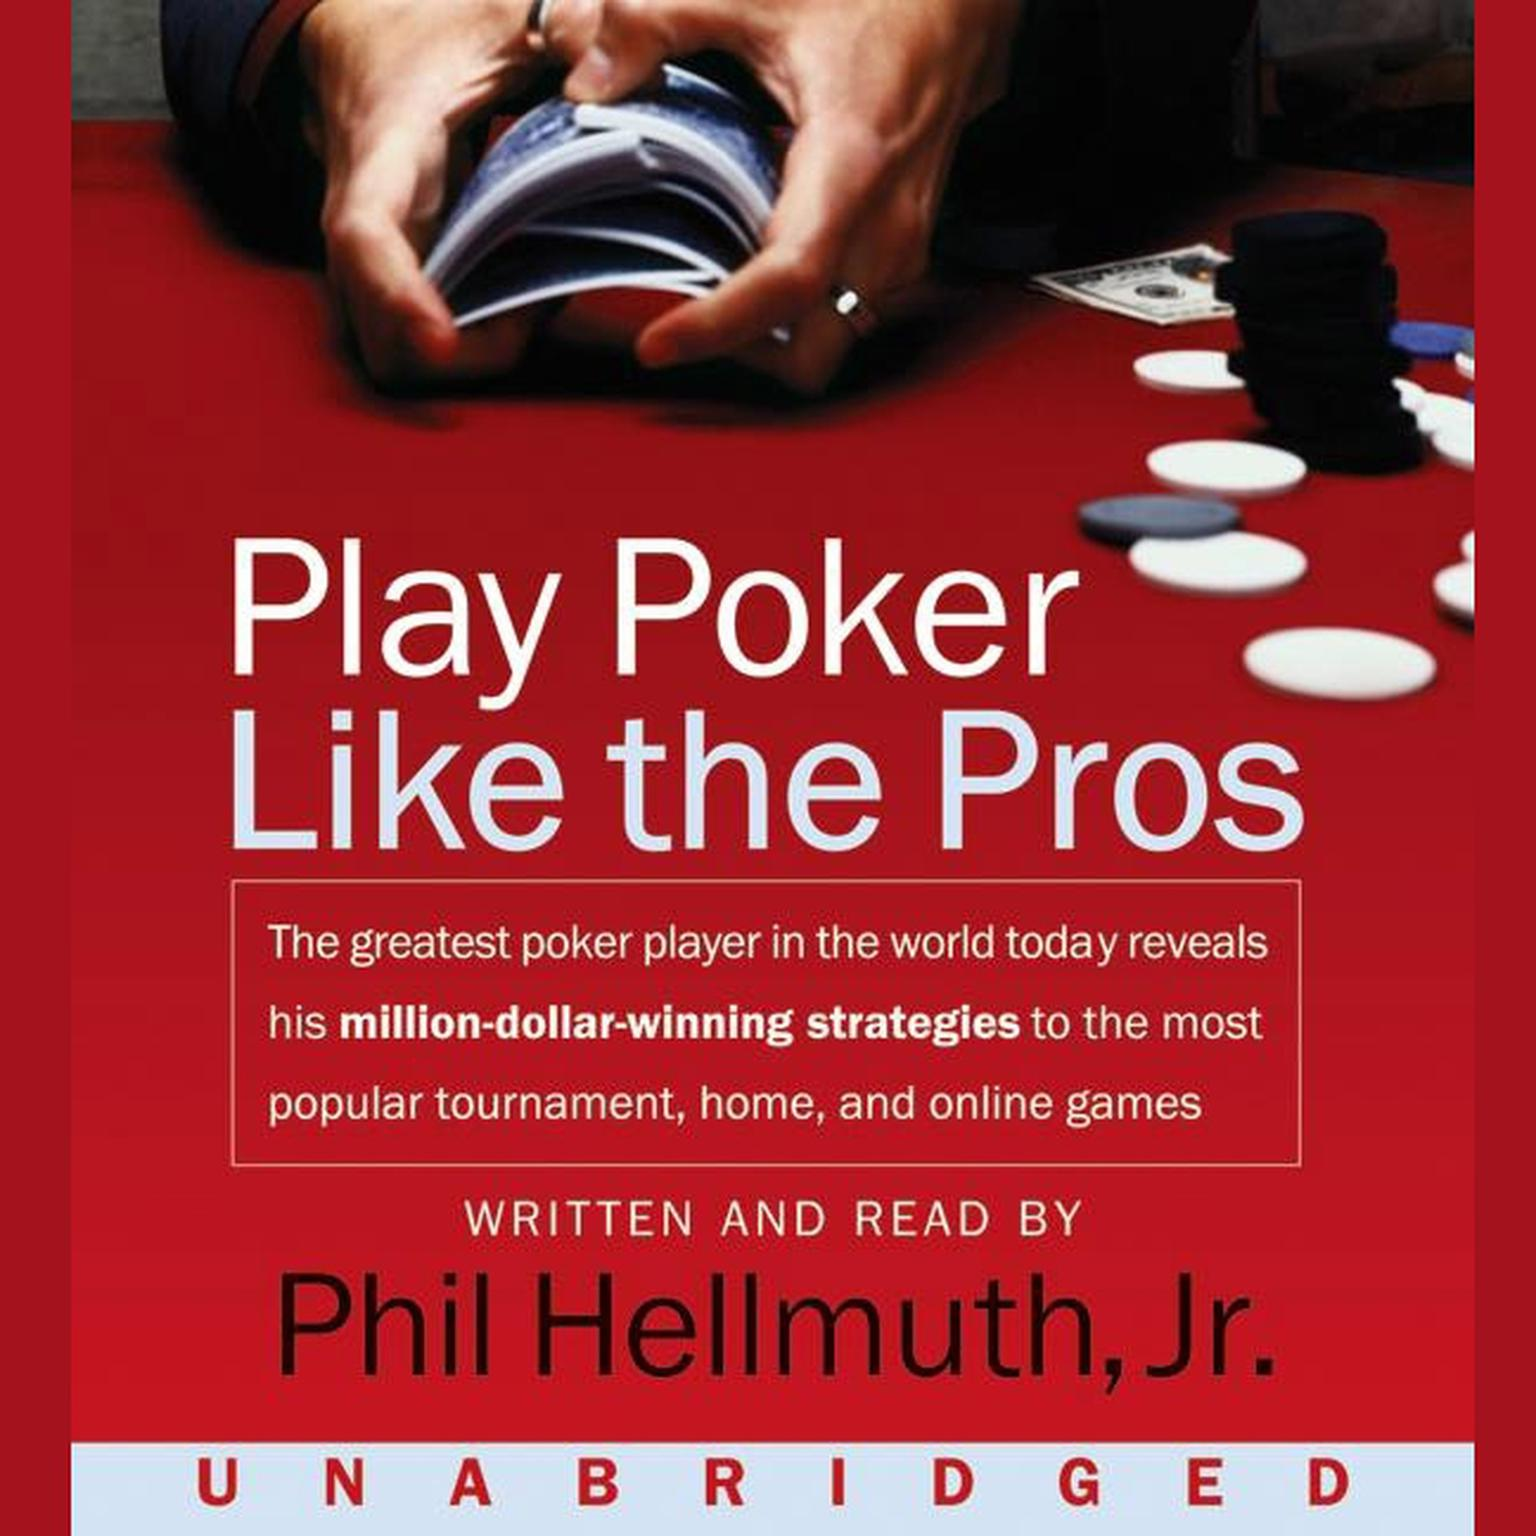 Printable Play Poker Like The Pros: The greatest poker player in the world today reveals his million-dollar-winning strategies to the most popular tournament, home and online games Audiobook Cover Art